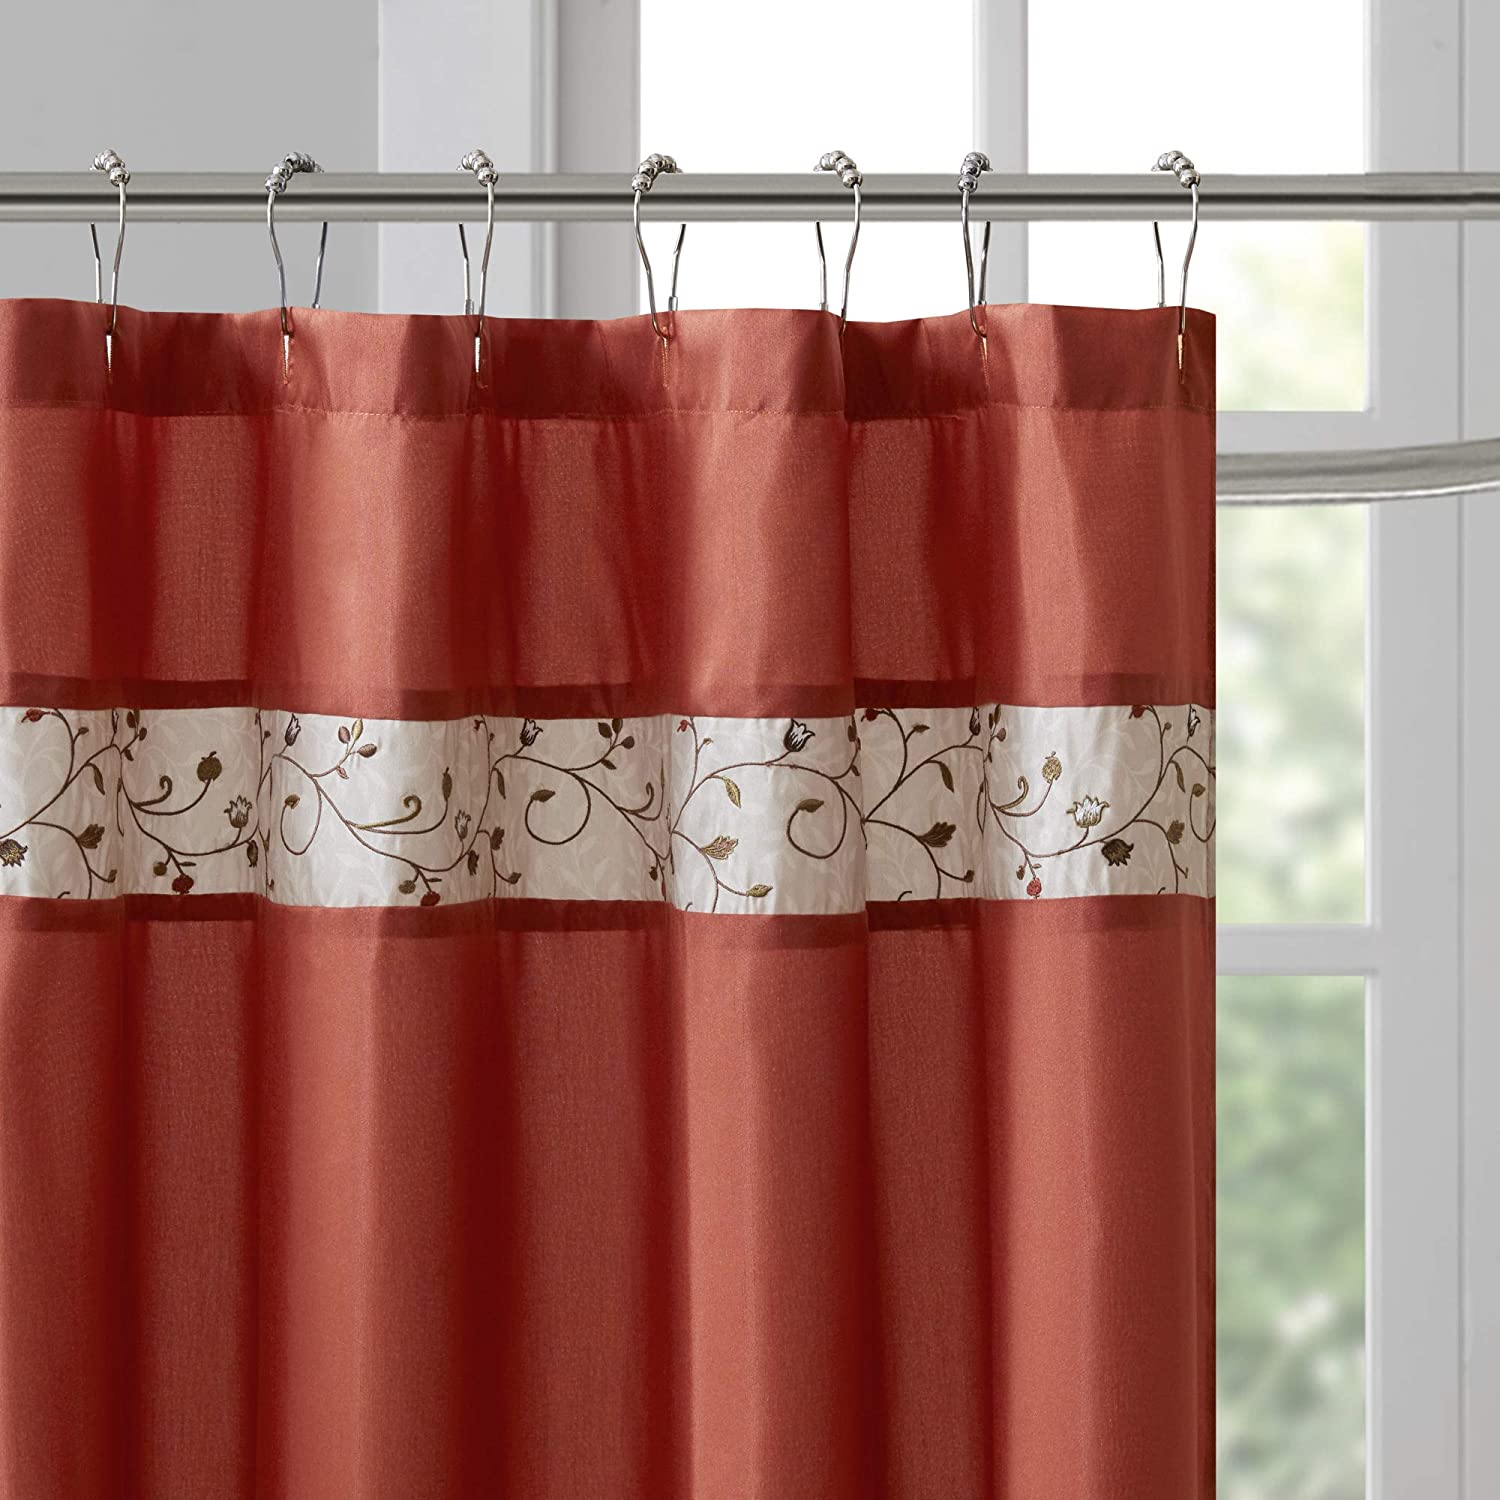 Madison Park Serene Flora Fabric Shower Curtain Mbroidered Transitional Curtains For Bathroom 72